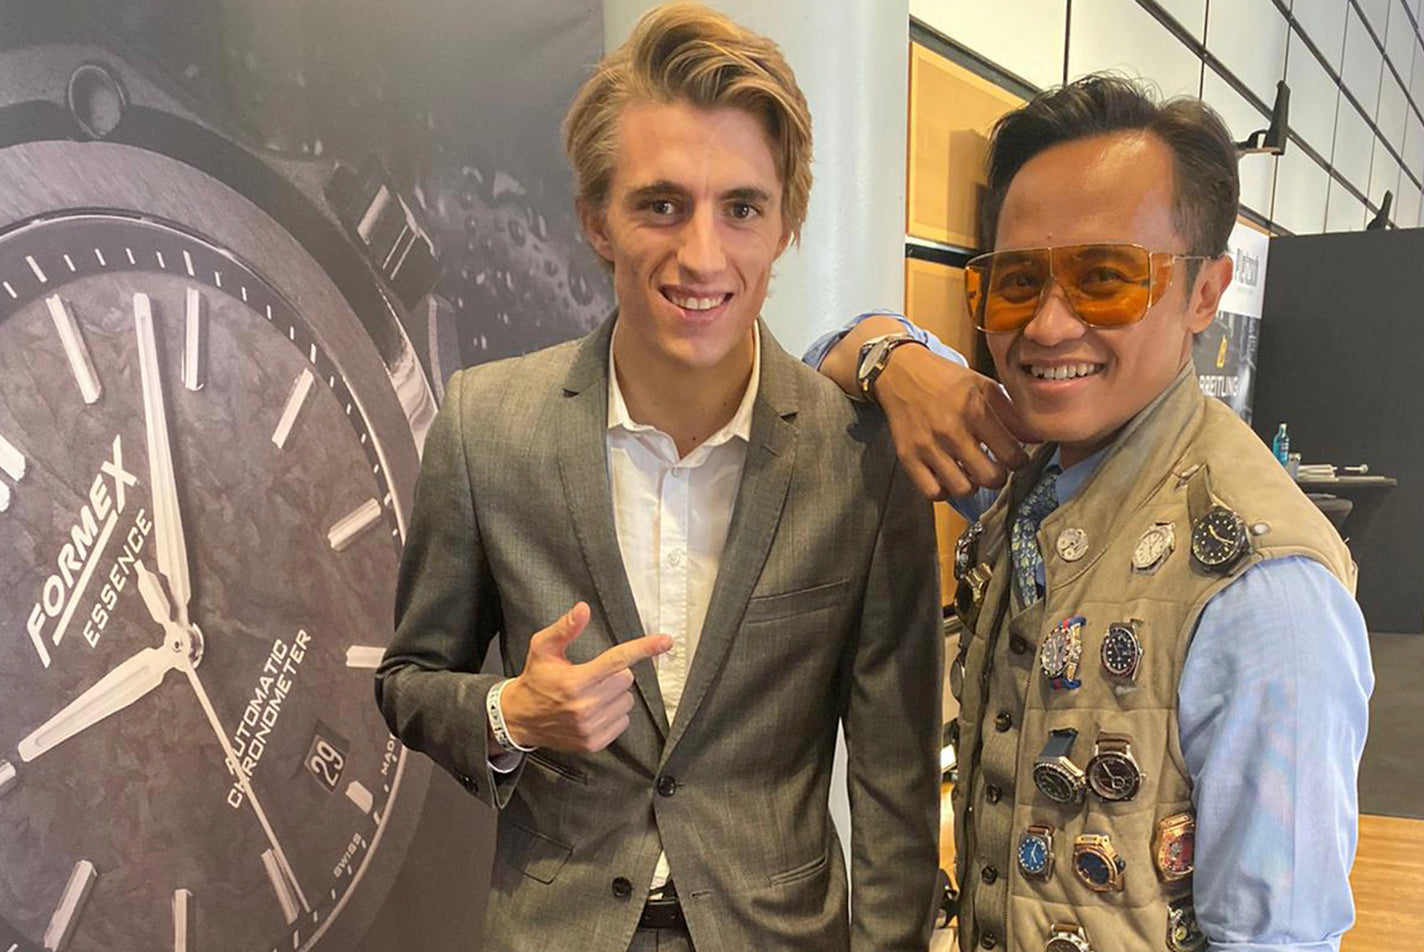 Alex Toril at Watchtime Düsseldorf